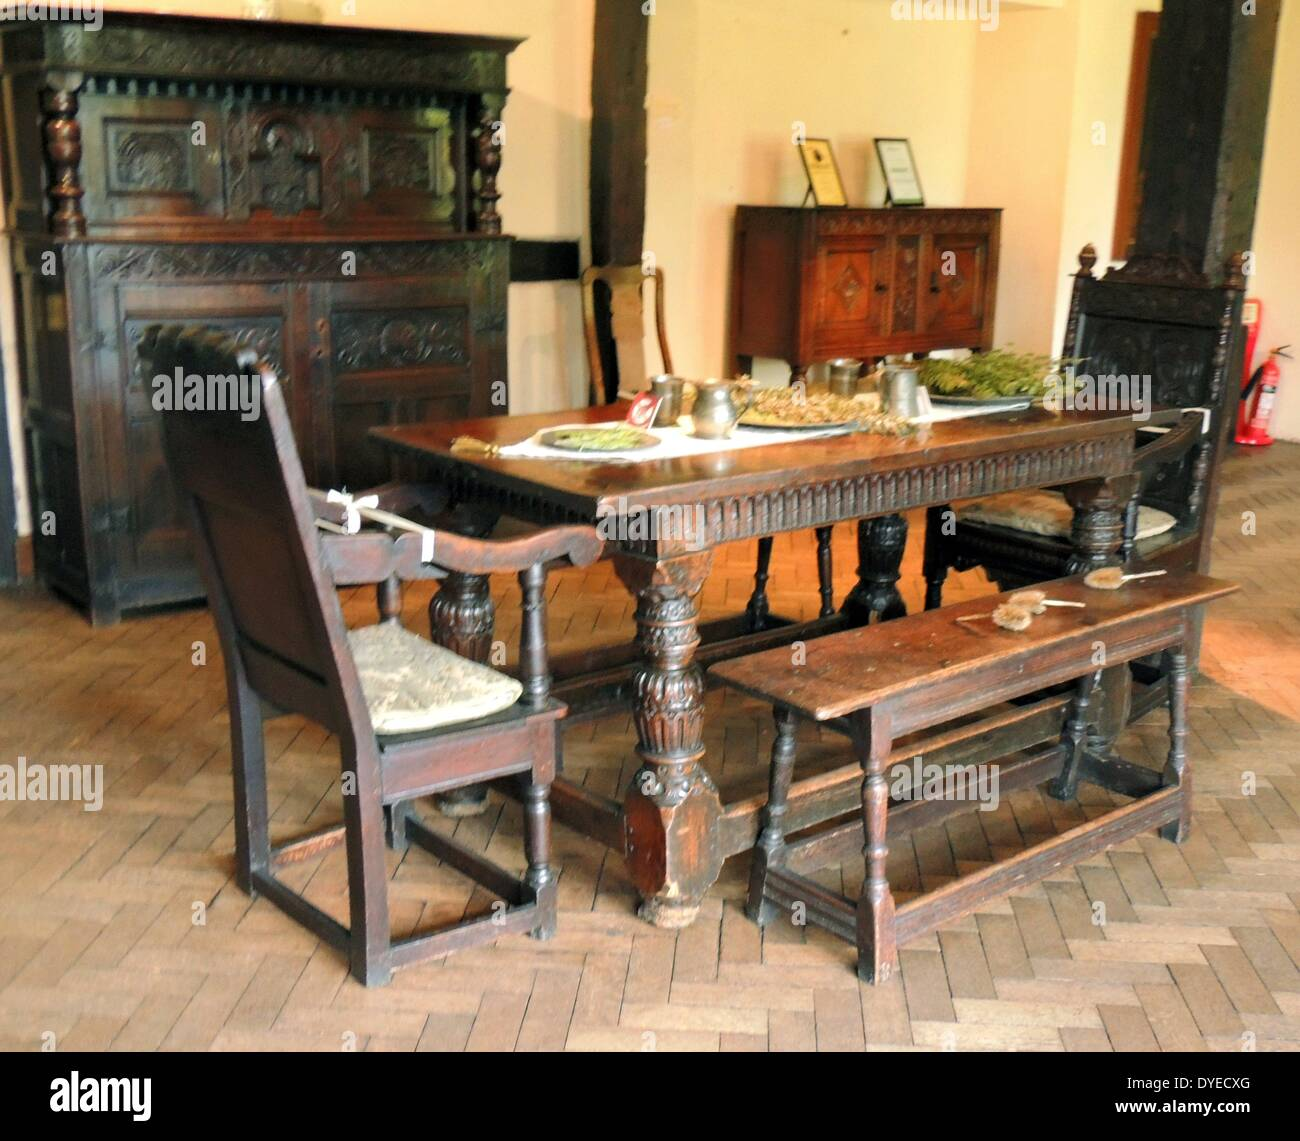 17th Century Wooden Dining Table And Room A.D